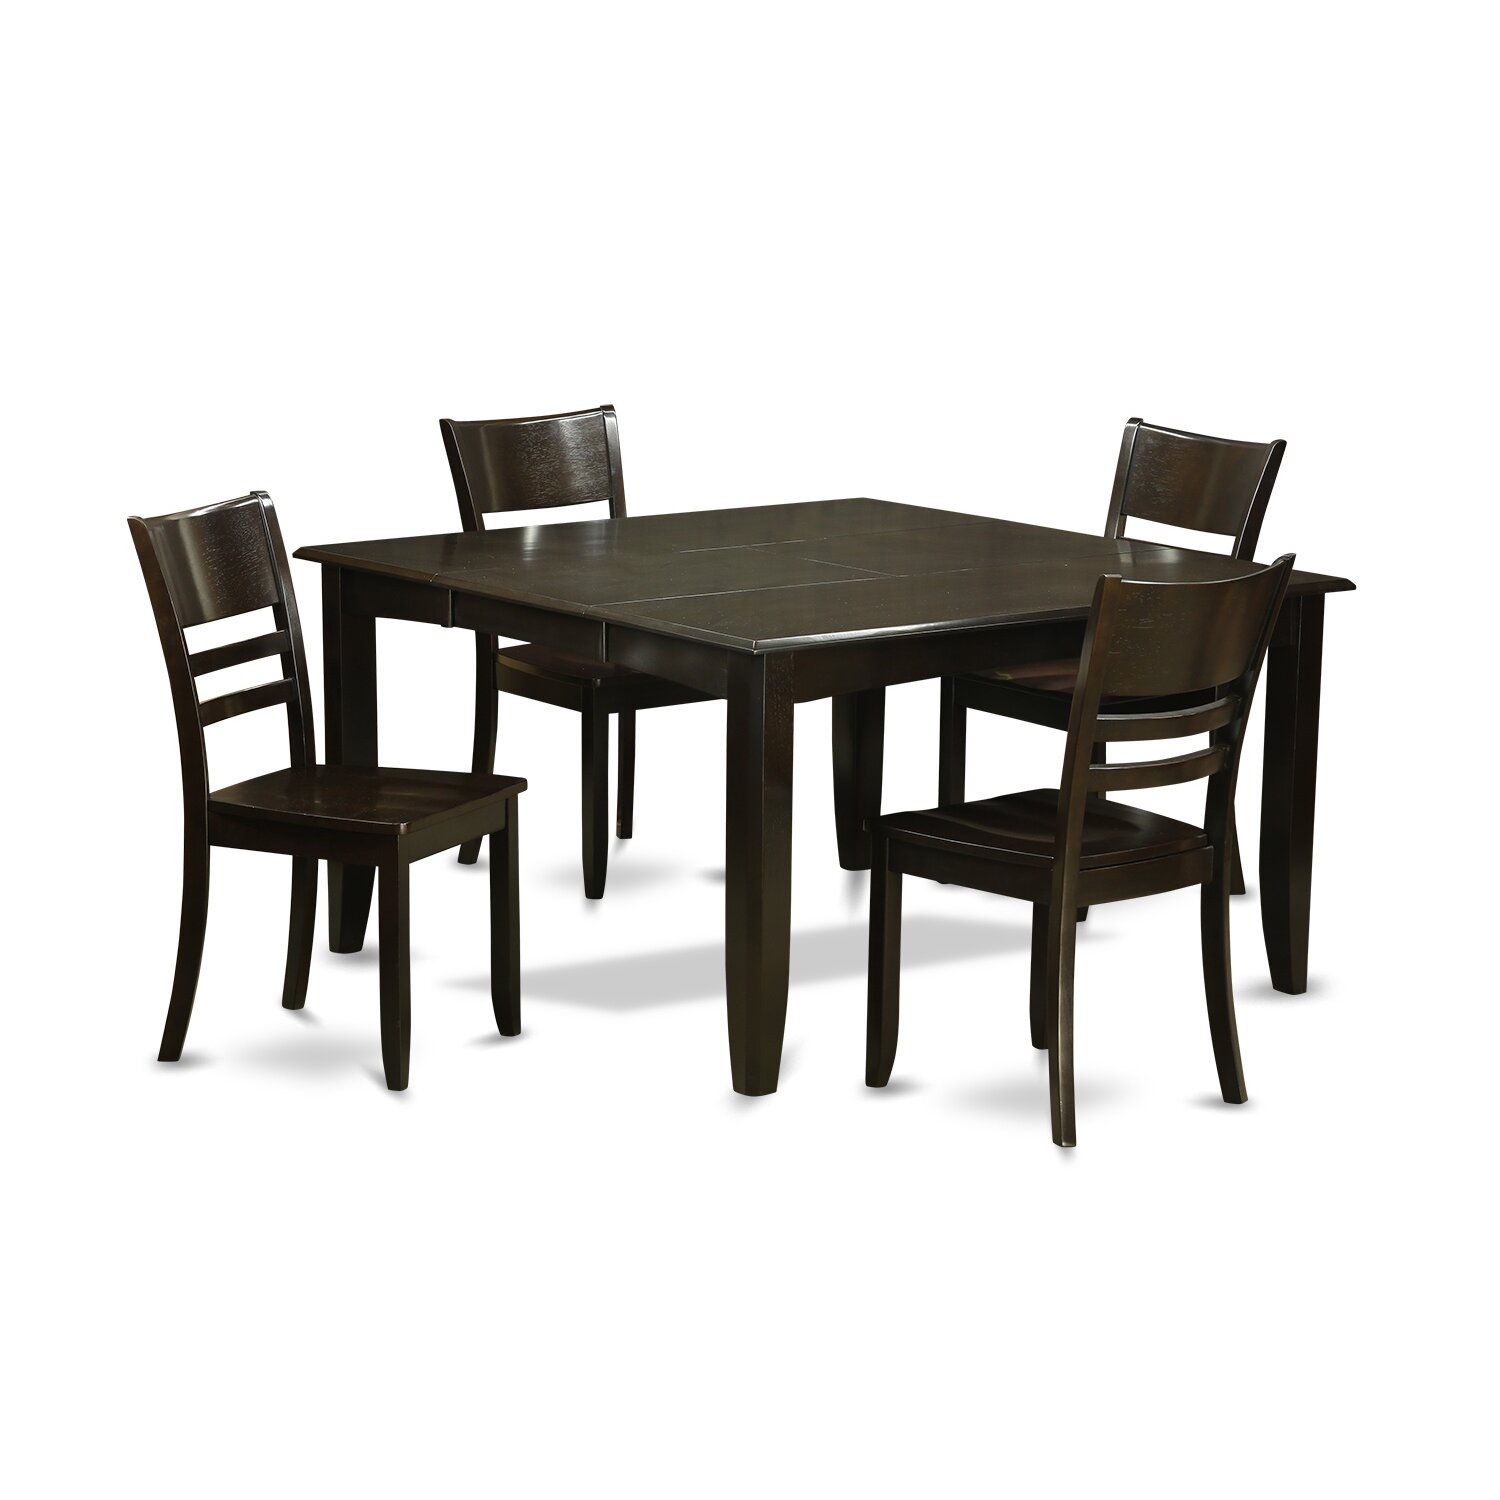 Wooden importers parfait 5 piece dining set wayfair for Wooden dining room chairs